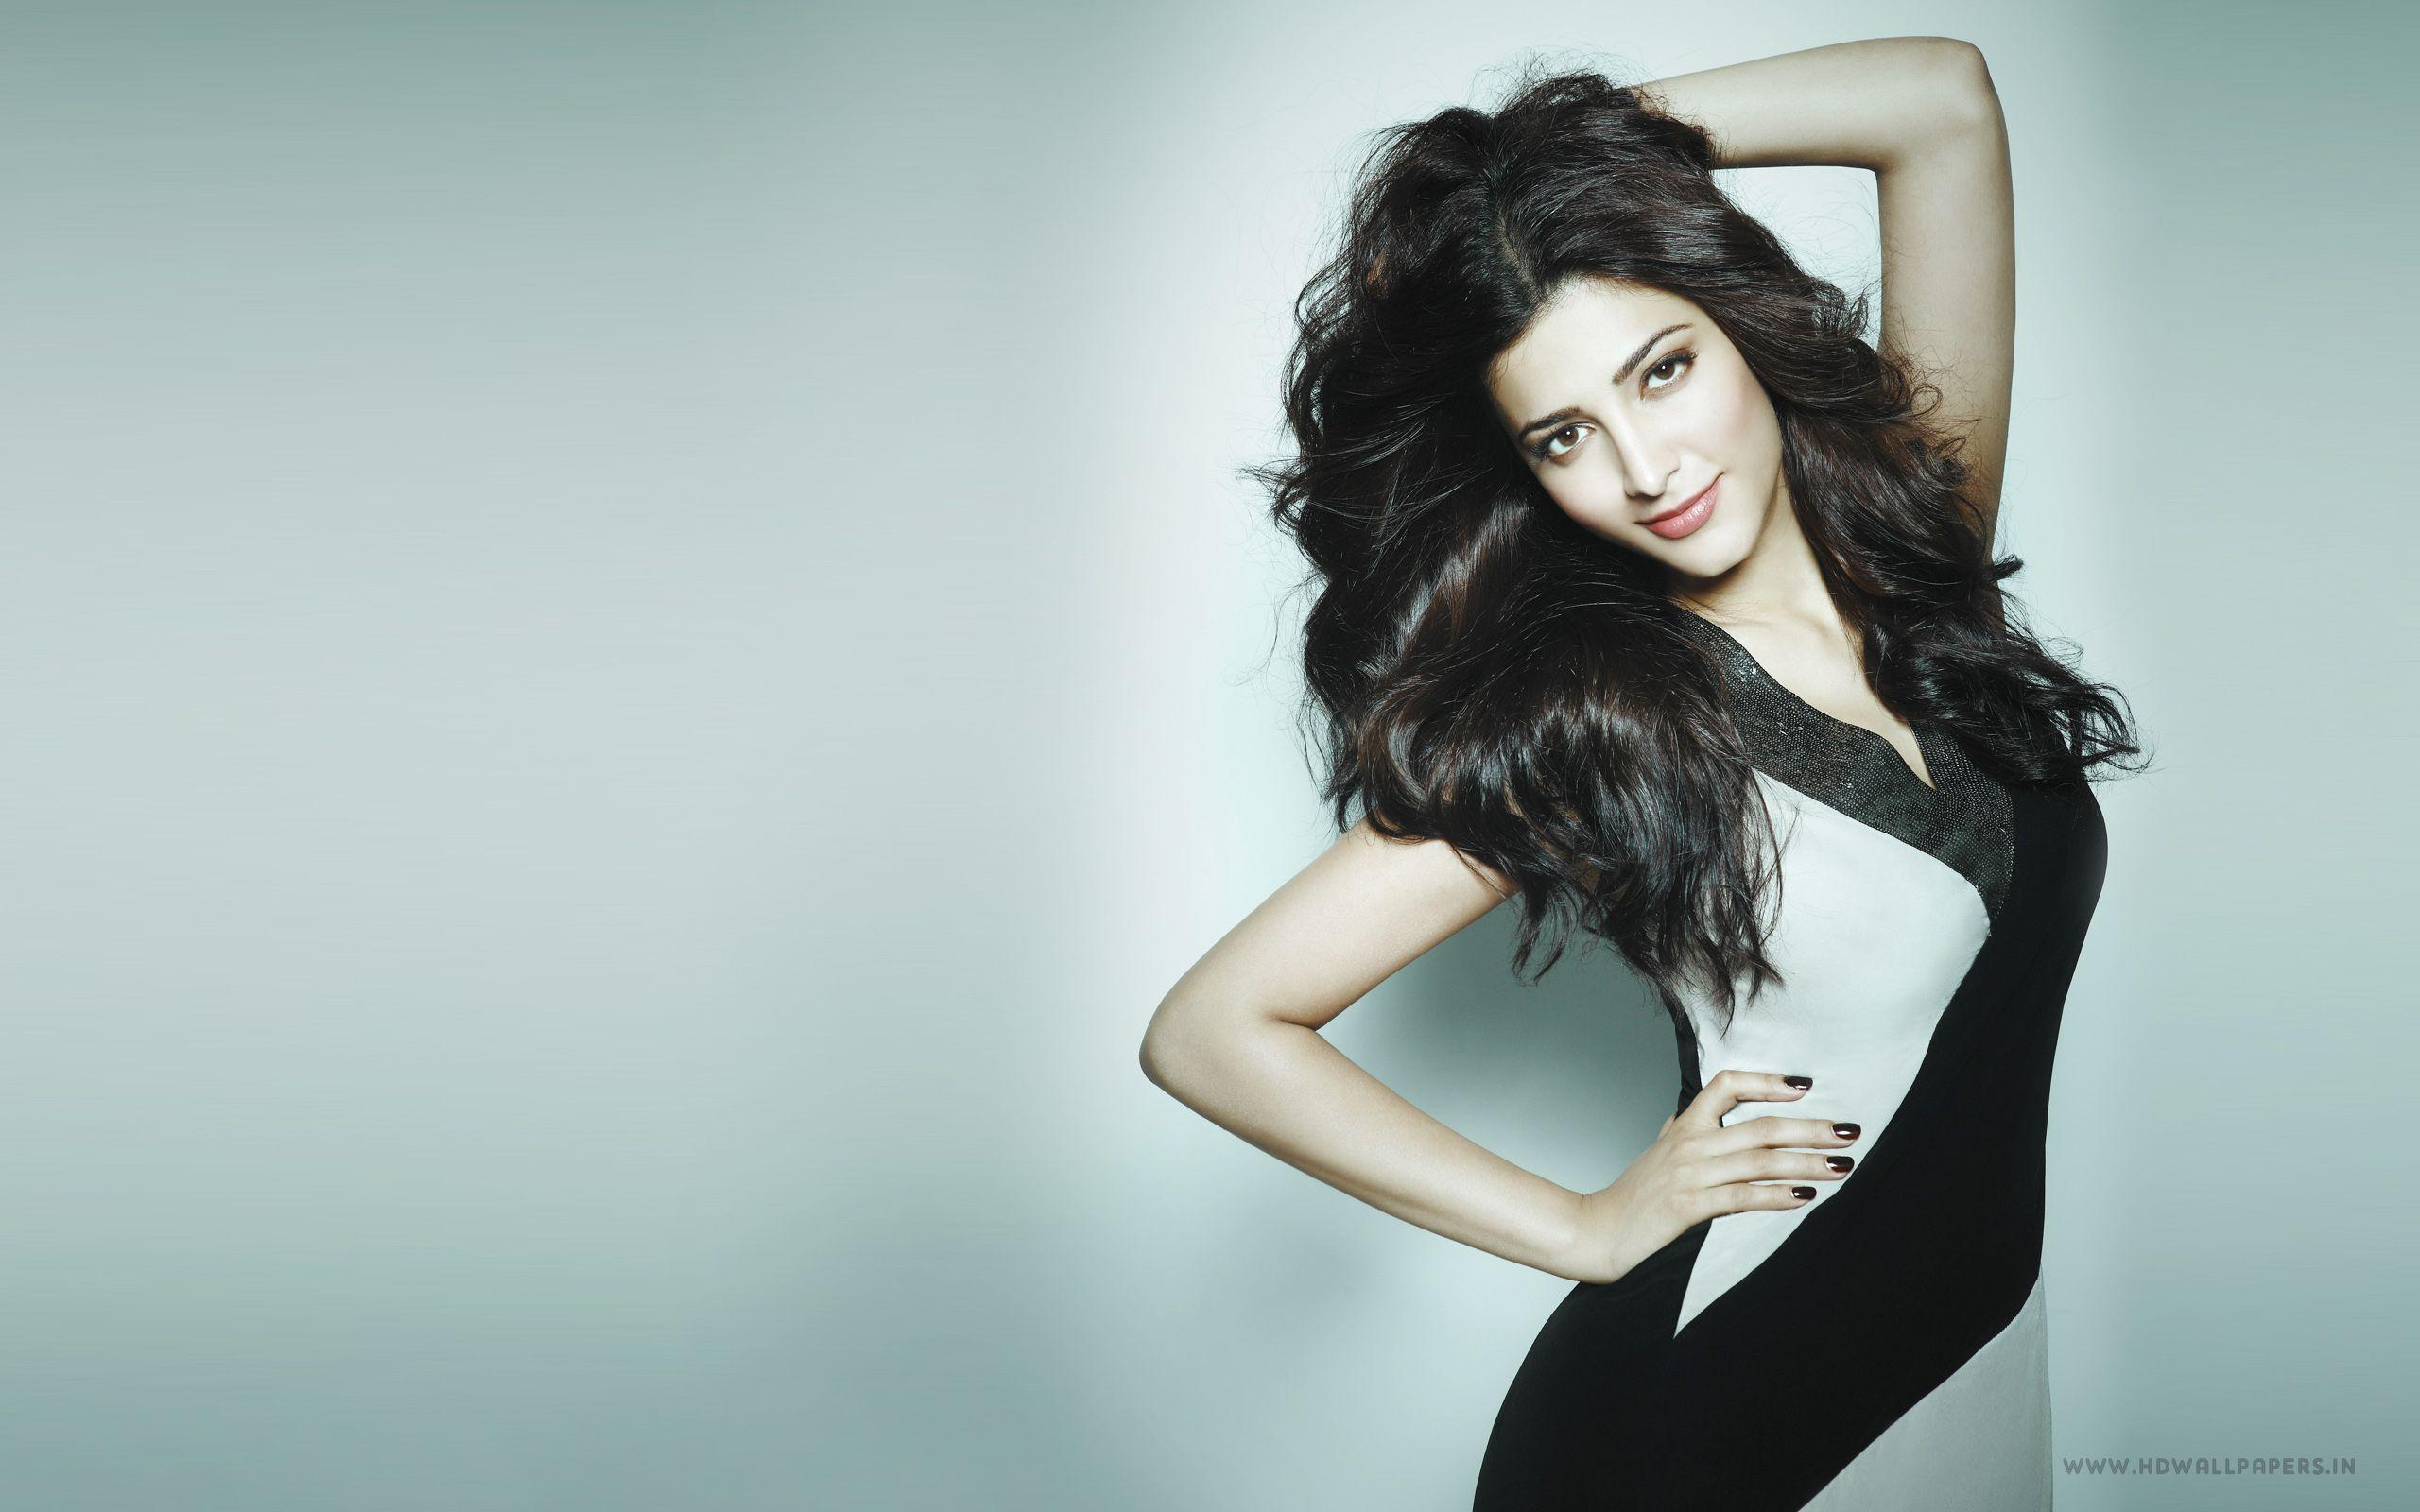 Latest wallpapers and photos of bollywood actress sonam kapoor.